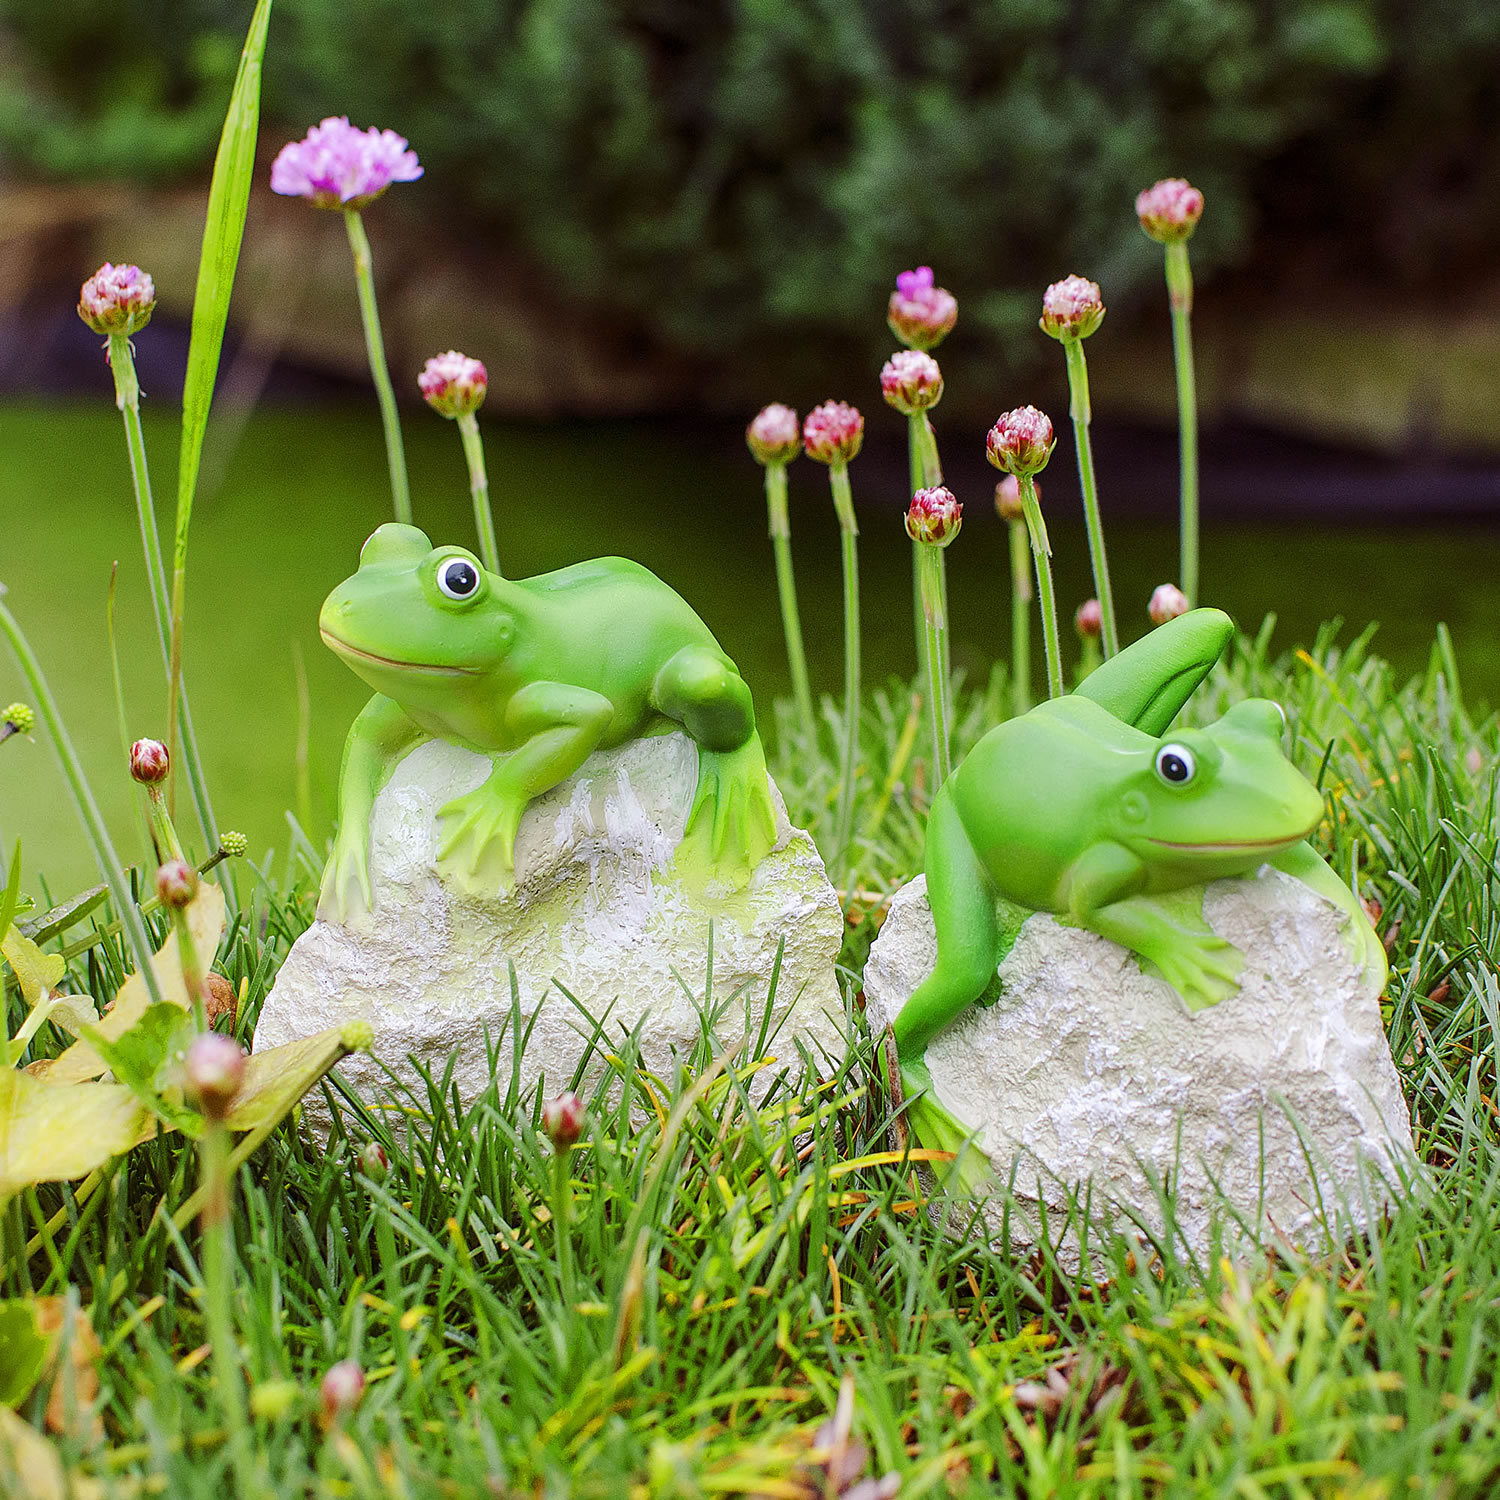 Leafy leroy the pair of frogs on rocks garden ornament set garden4less uk shop Pond ornaments